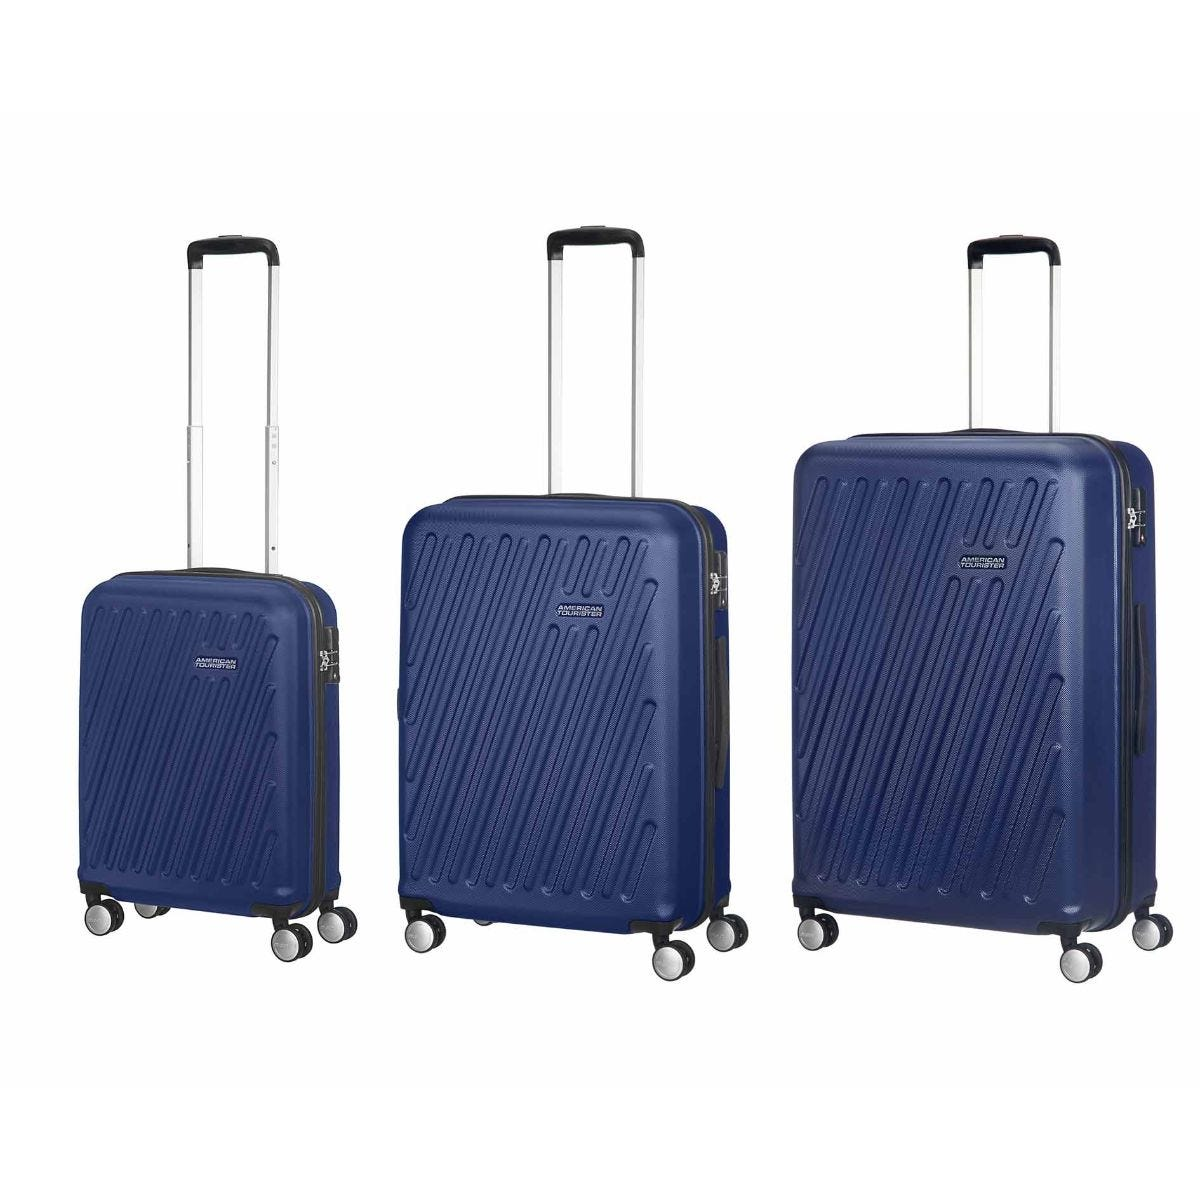 Luggage | Travel Bags | Hand Luggage | Laptop Travel Bag